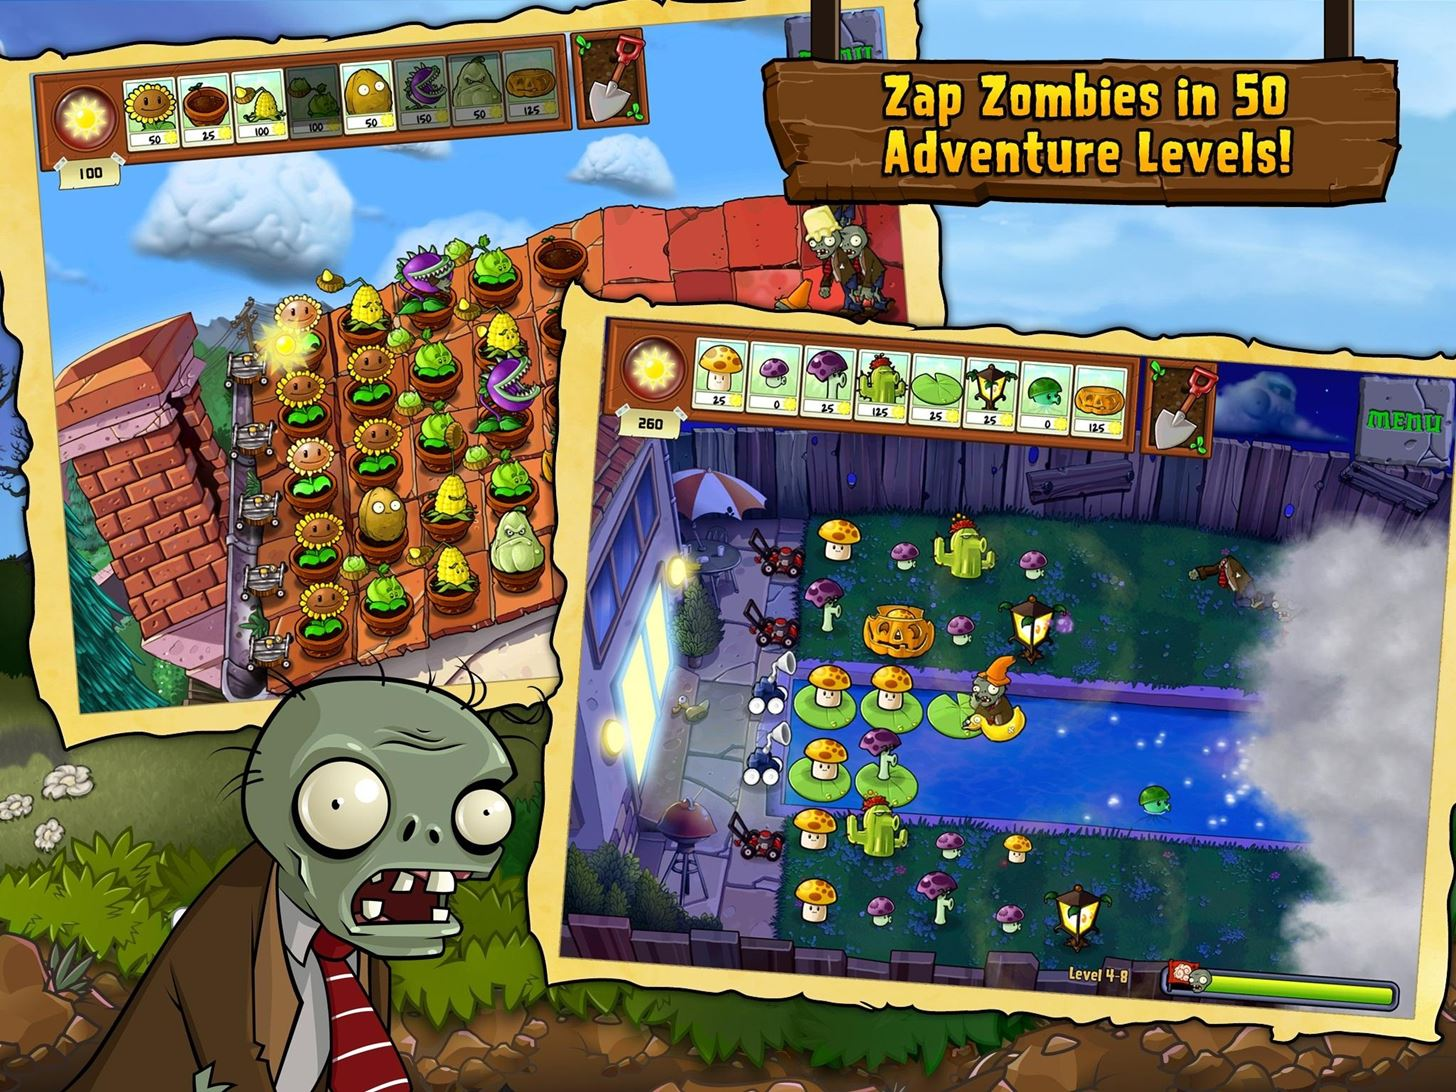 Deal Alert: Plants vs. Zombies Is Now Free in the iOS App Store Until the End of February